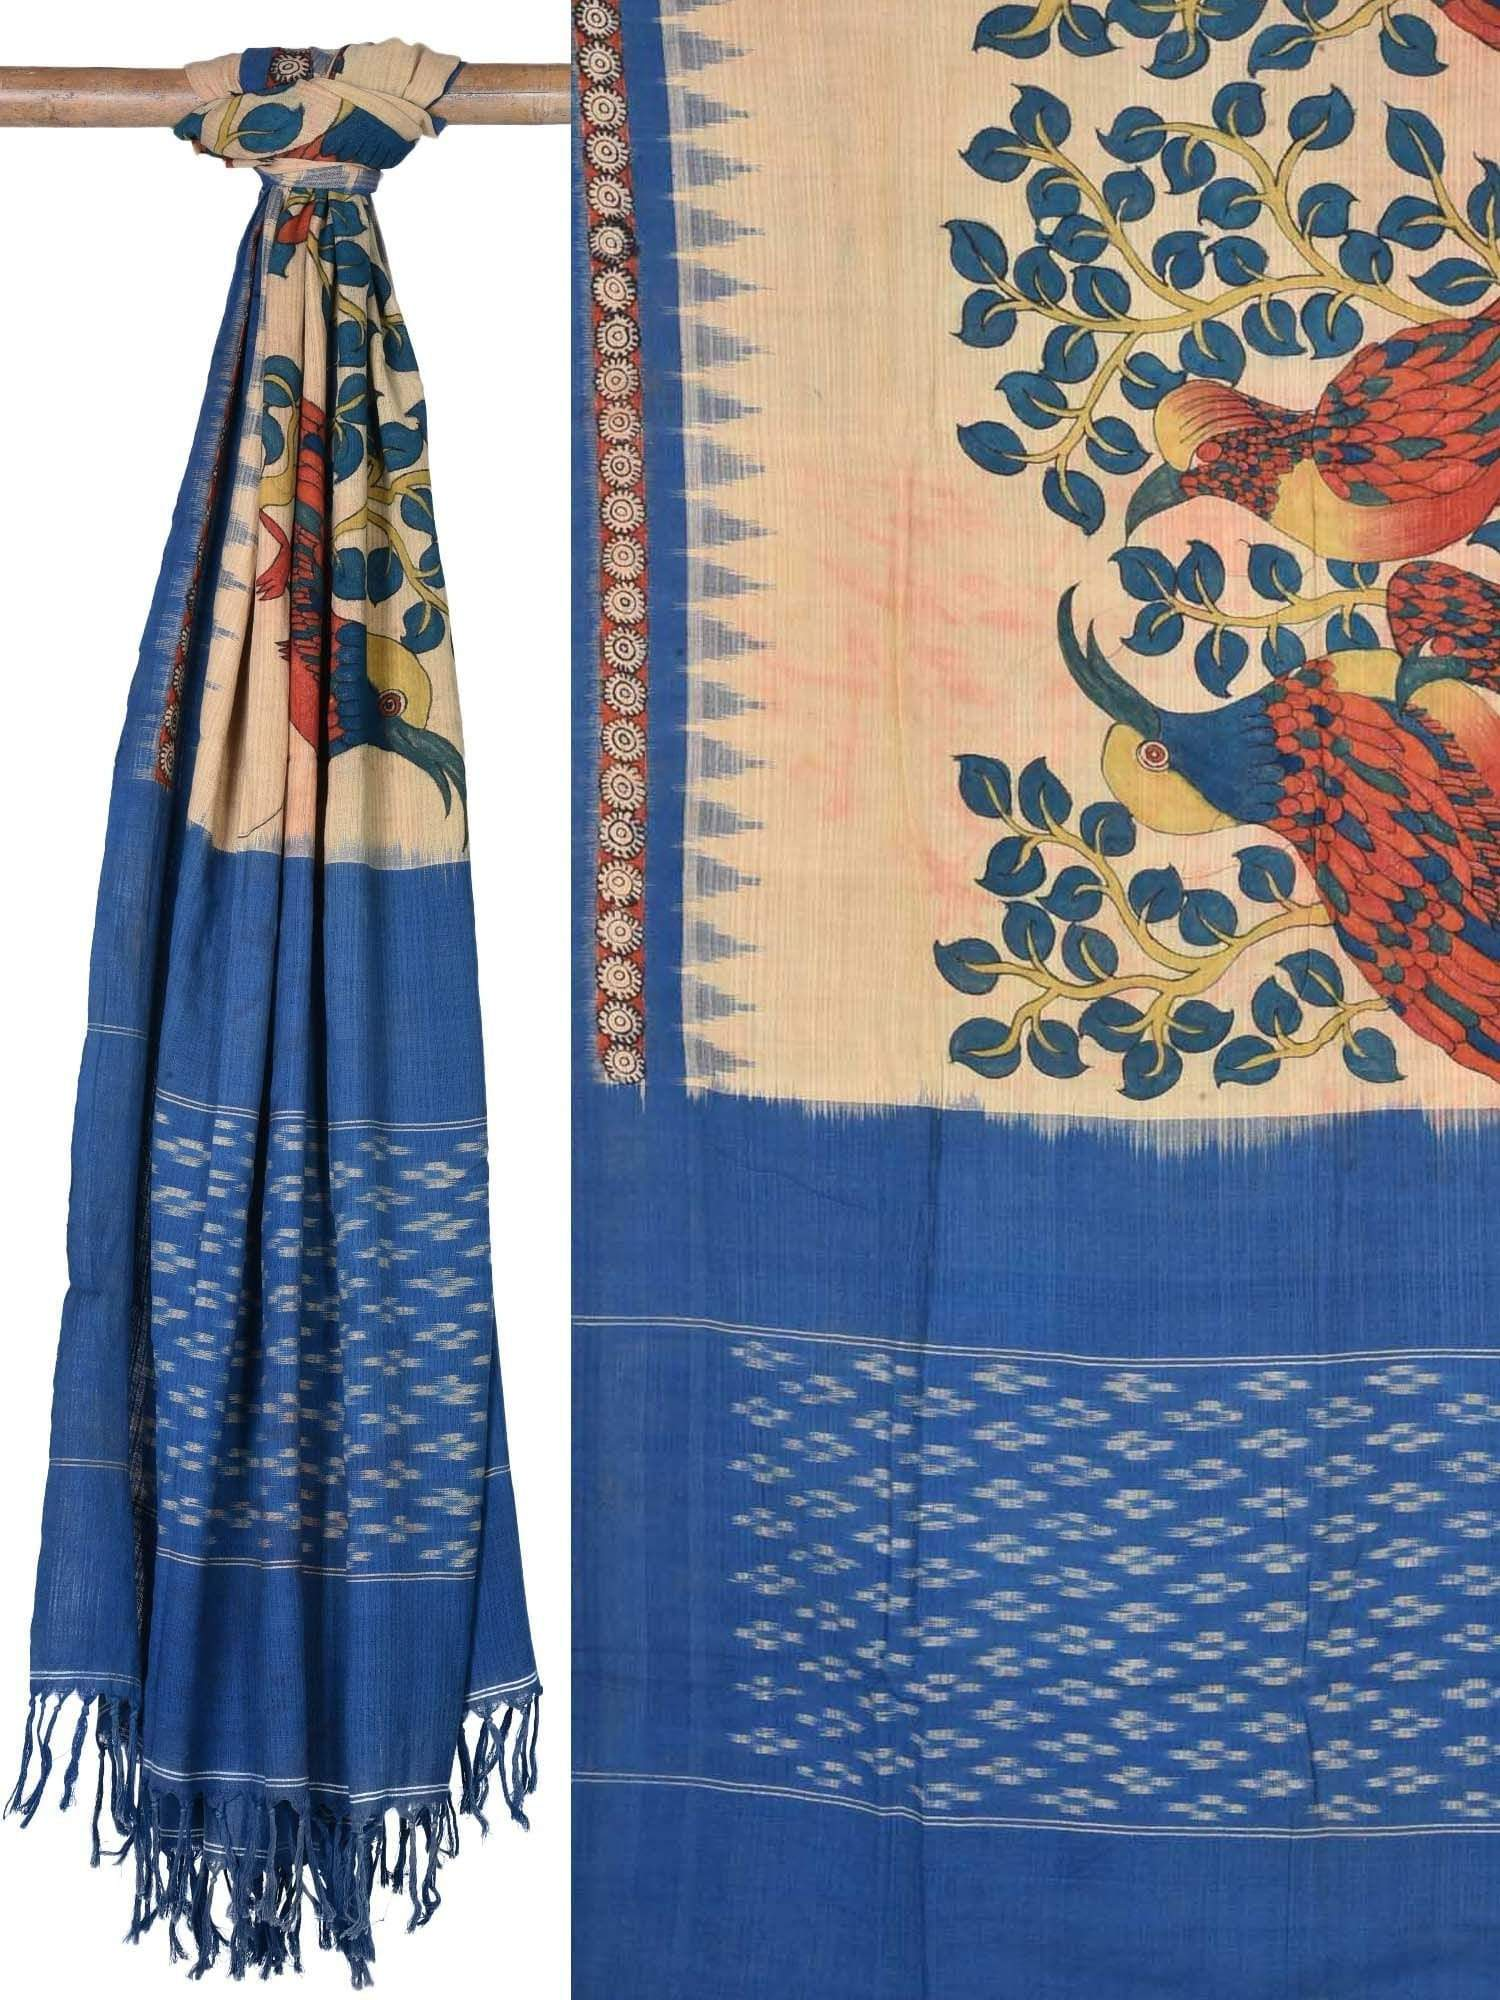 Blue Kalamkari Hand Painted Cotton Ikat Dupatta with Birds Design ds1703